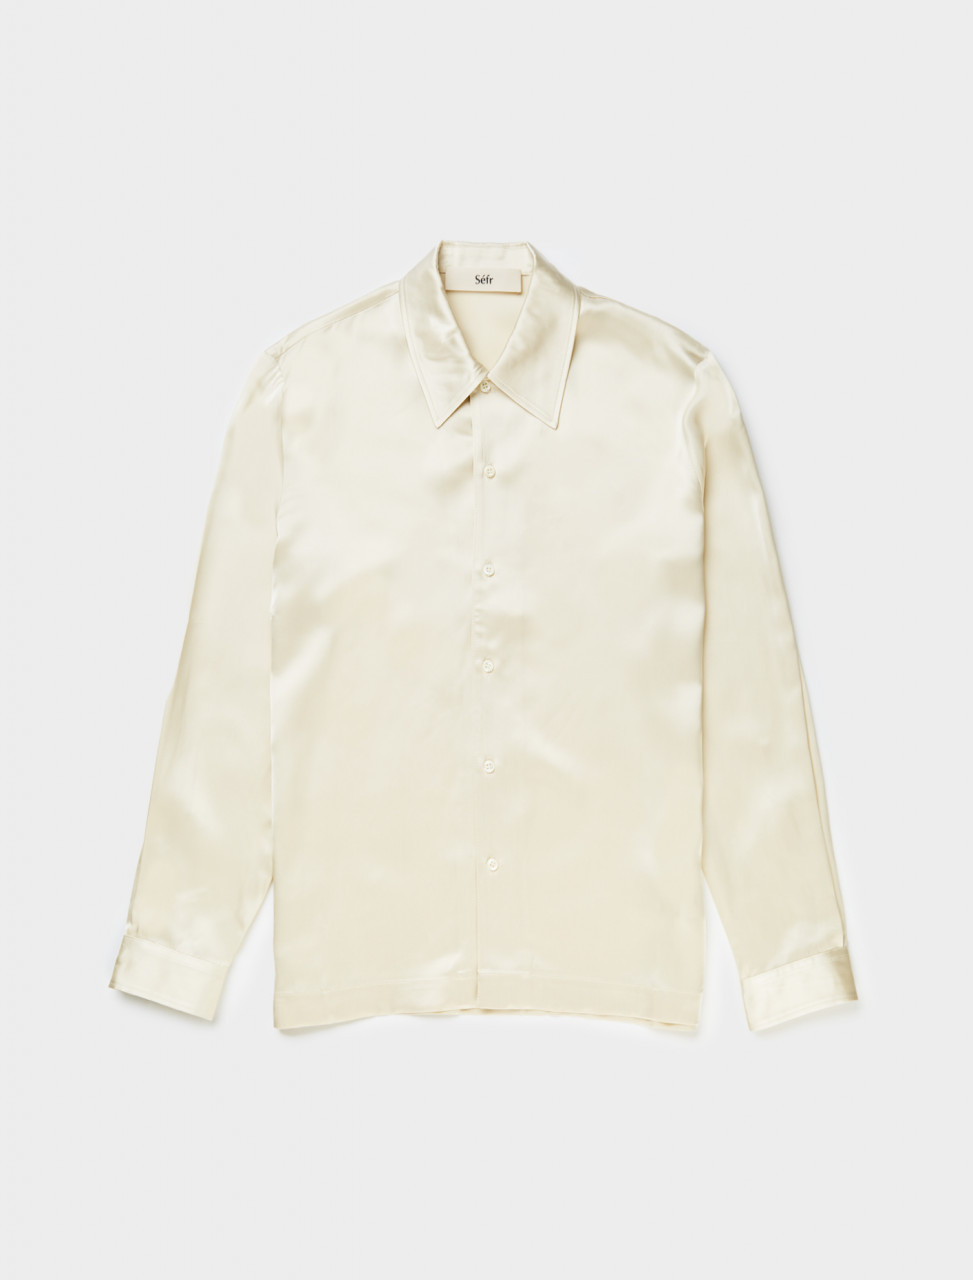 Front view of Séfr Ripley Shirt in Golden White